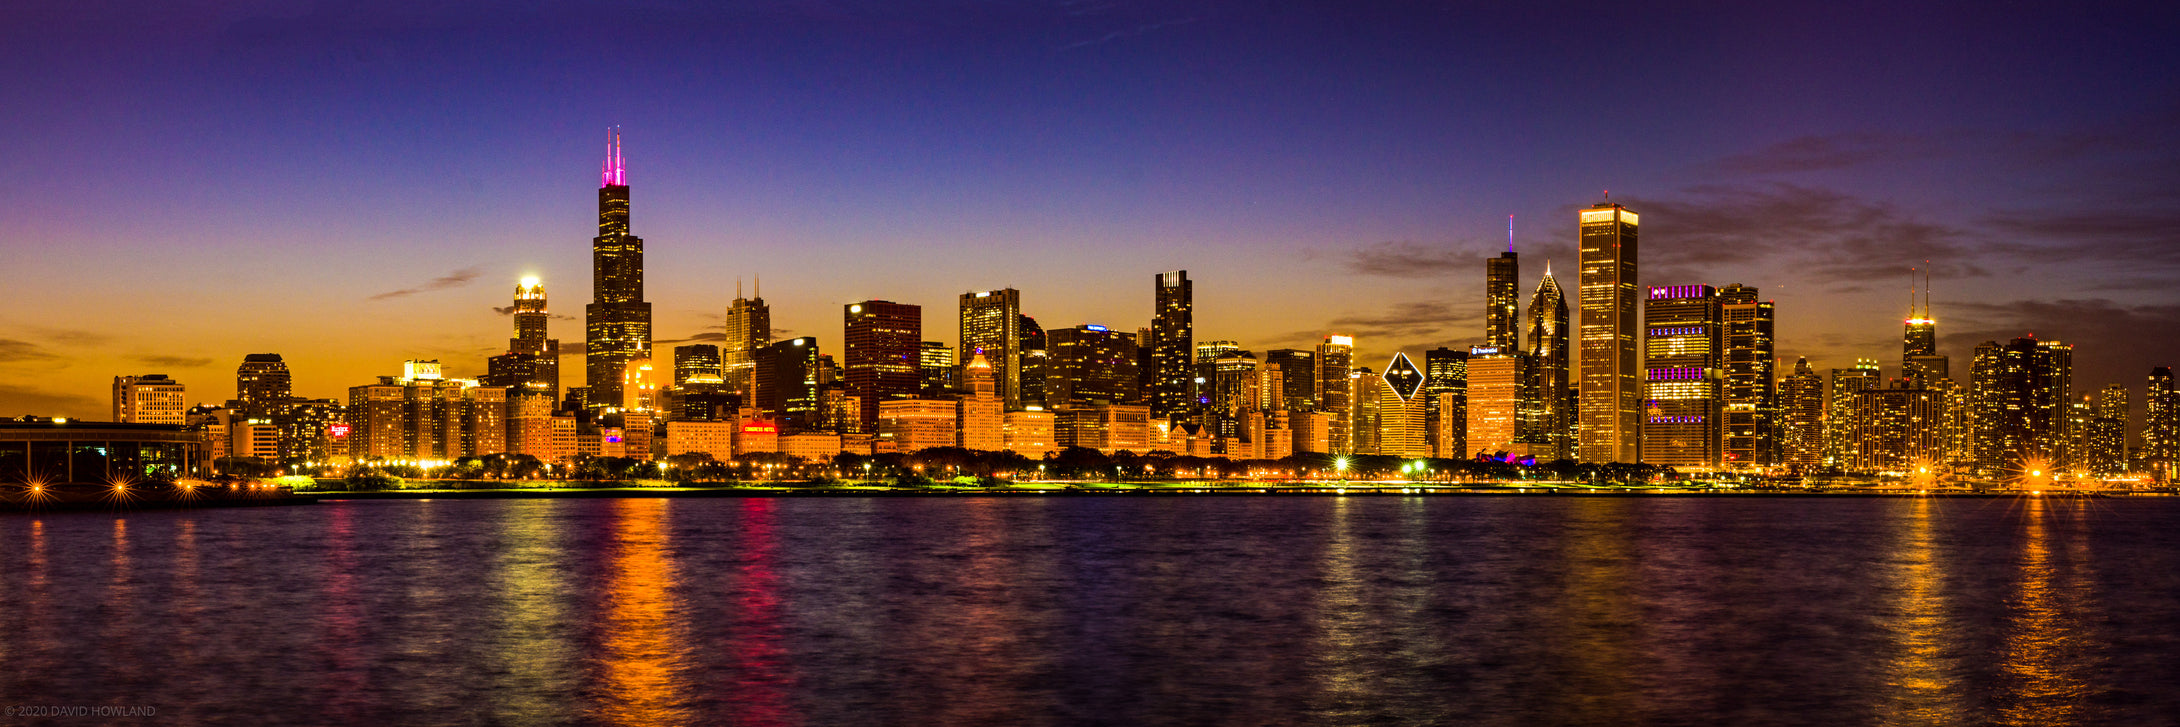 Chicago Skyline at Blue Hour